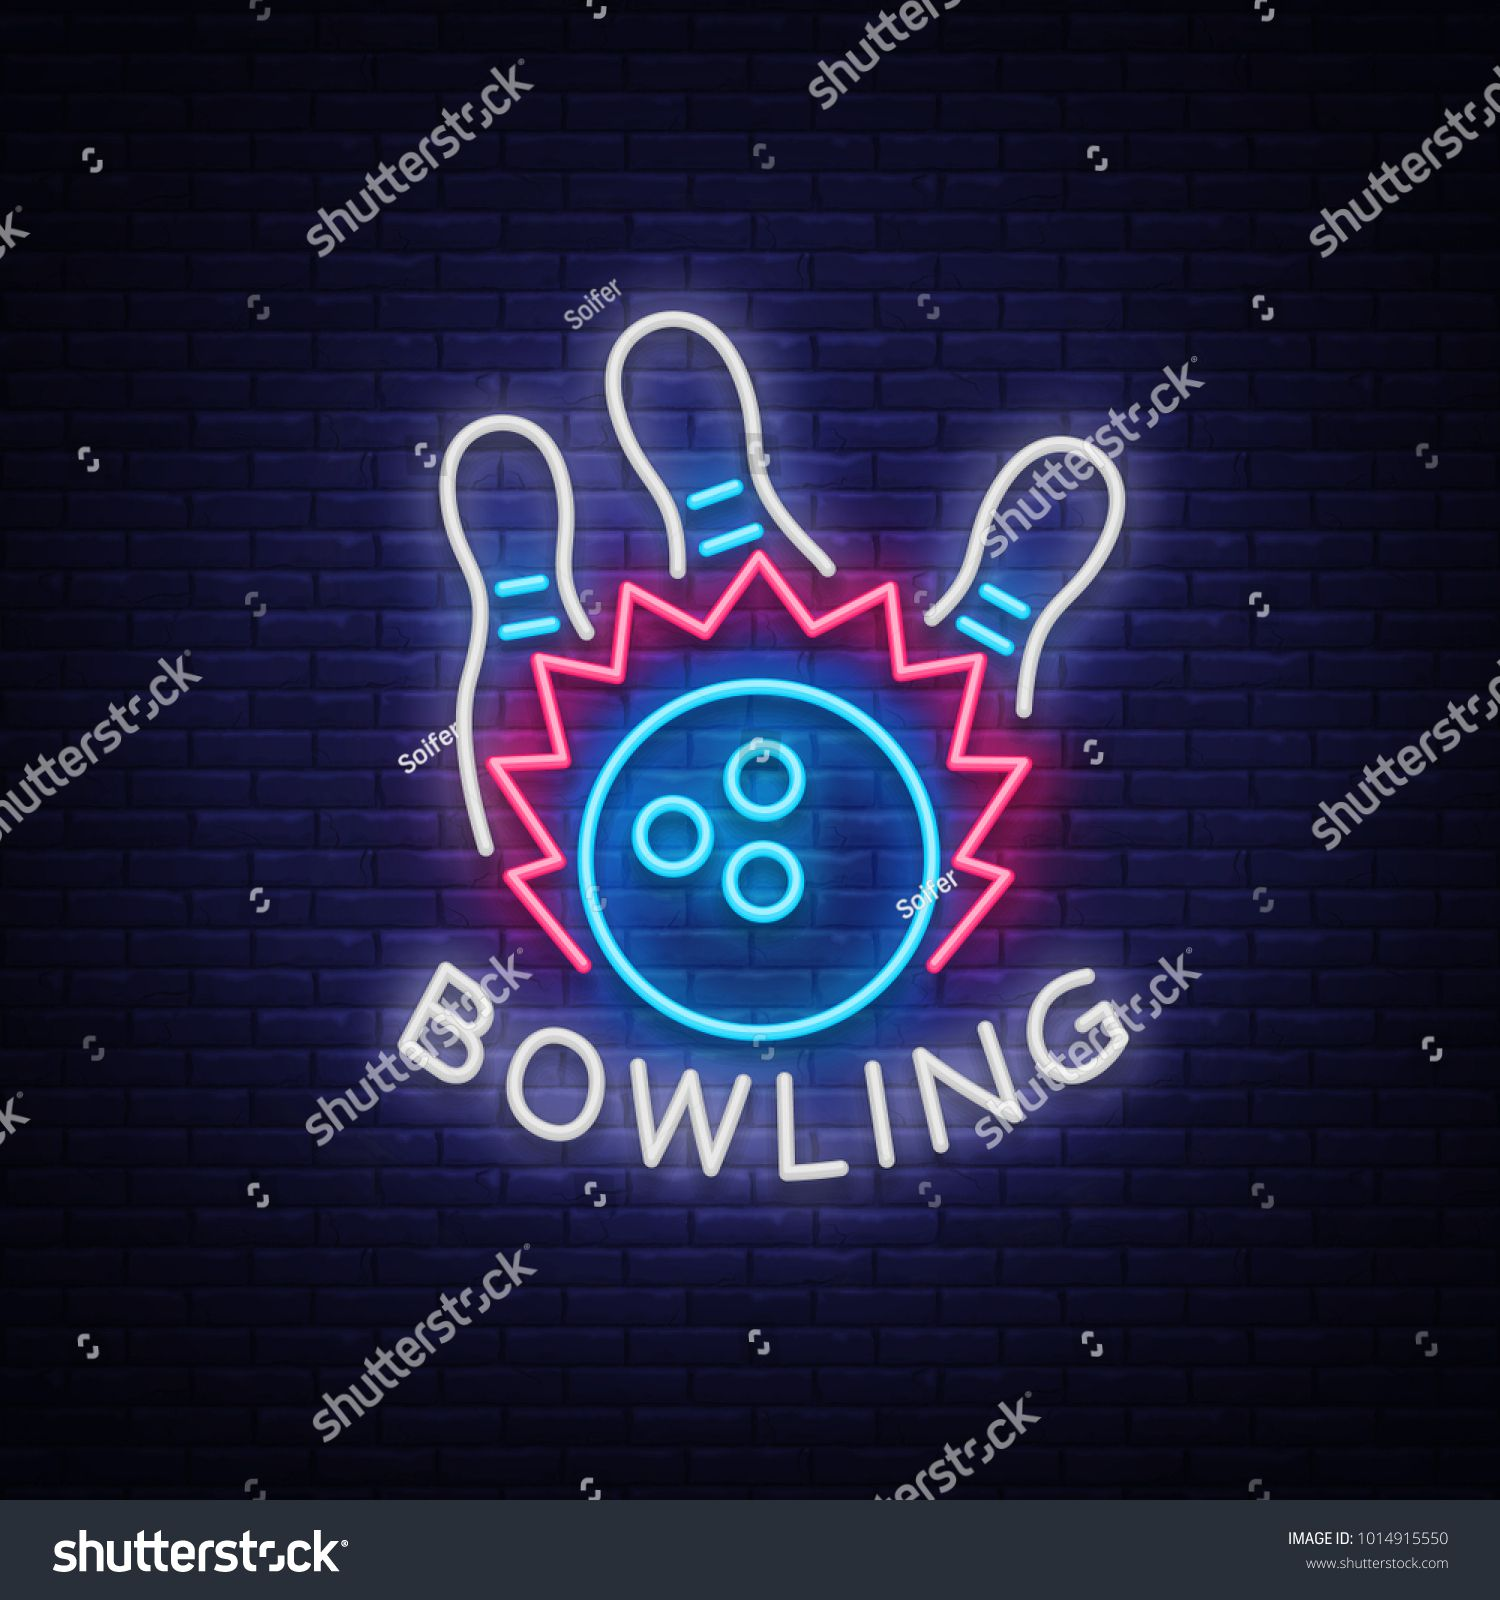 Bowling Logo Neon Sign Symbol Bright Banner Advertising Bright Night Bowling Luminous Neon Billboard Design A Template Fo Neon Signs Cool Neon Signs Neon